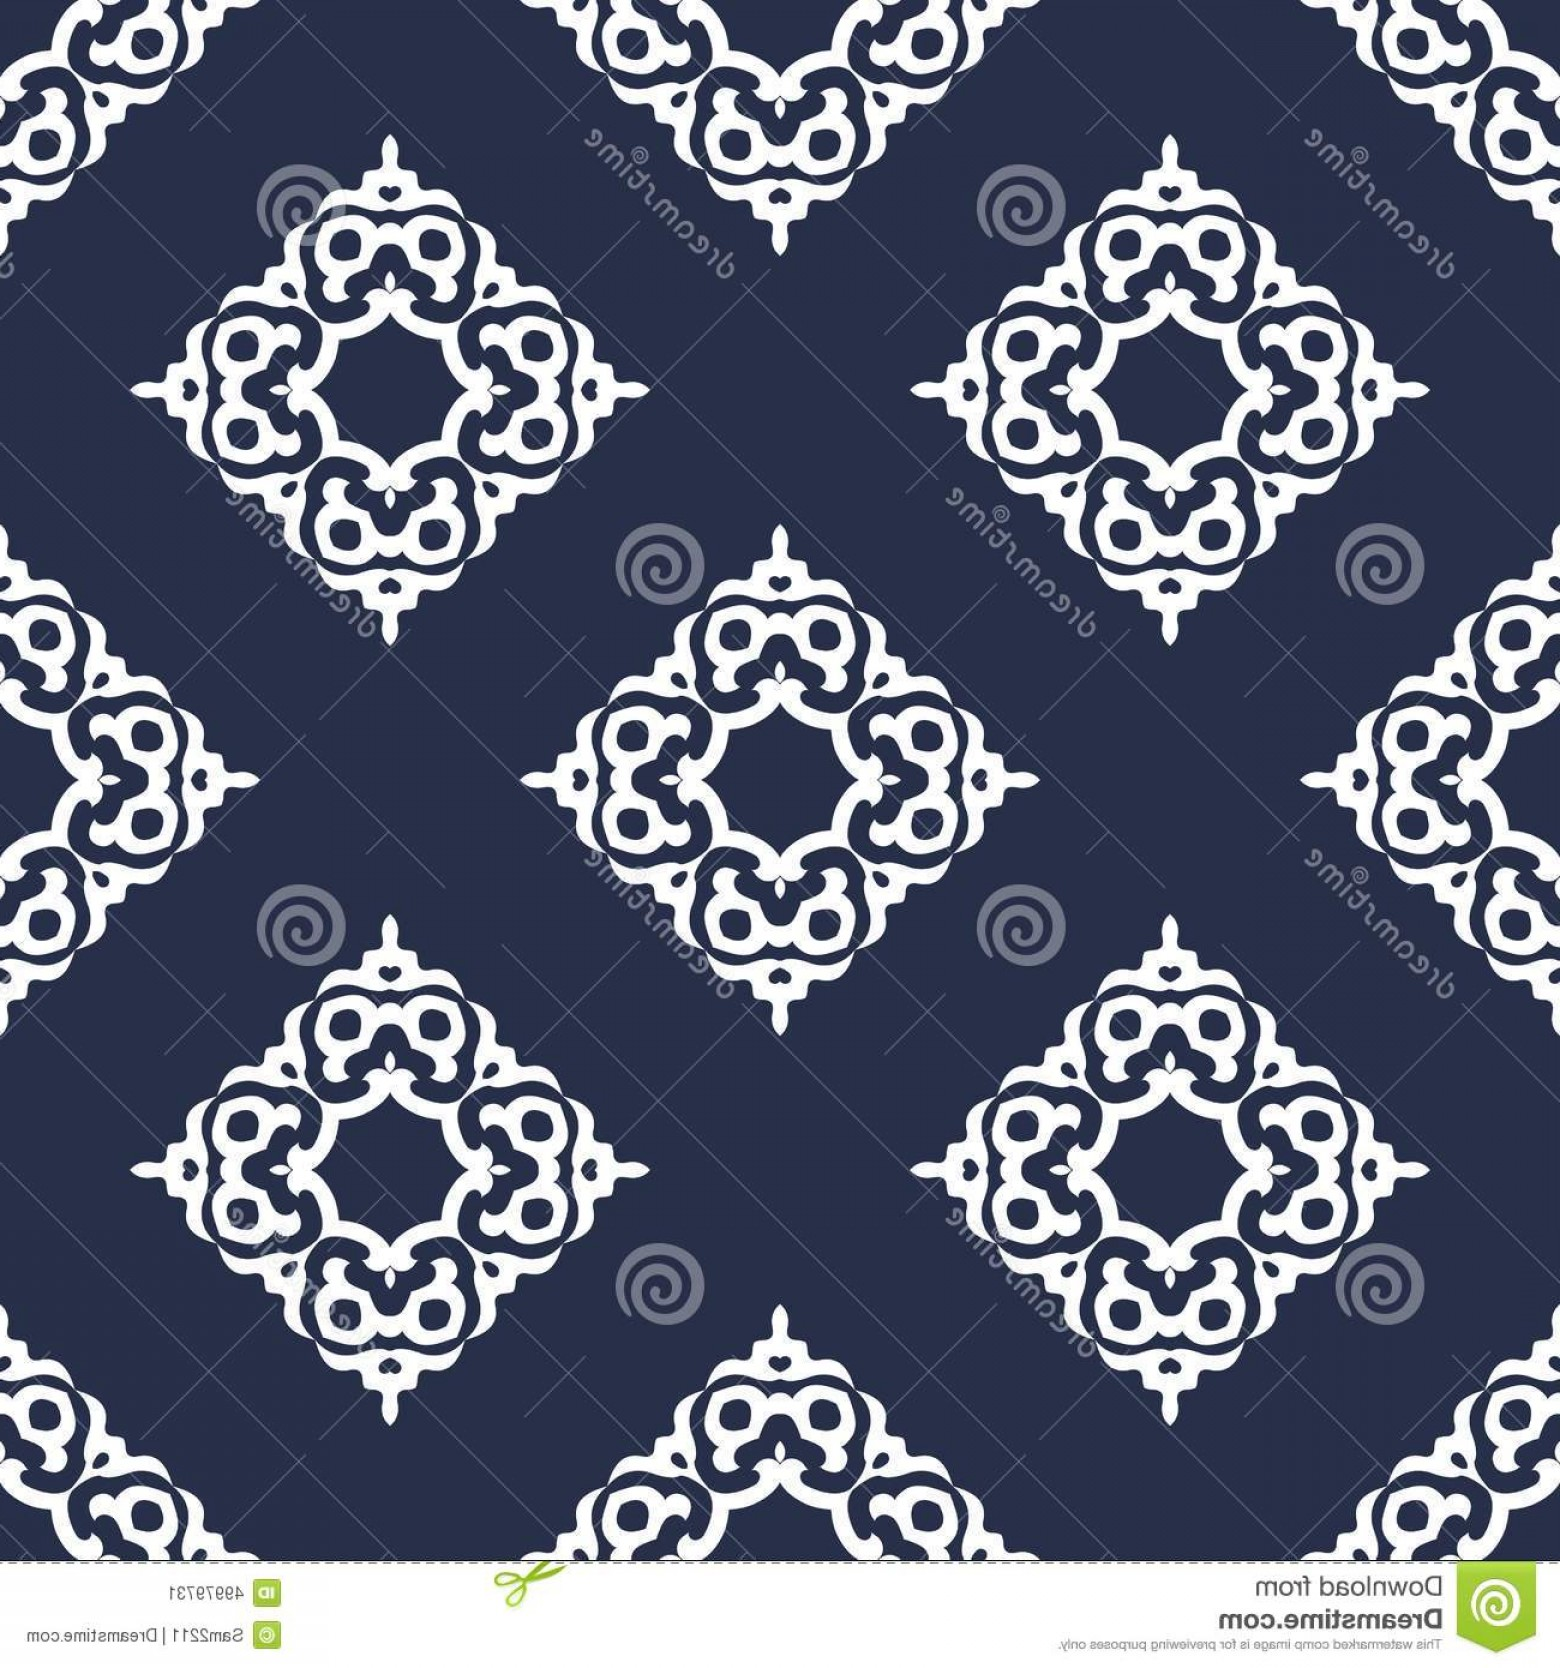 Victorian Motif Vector: Stock Illustration Luxury Damask Seamless Motif Vector Blue Gold Vintage Victorian Style Pattern Illustration Image